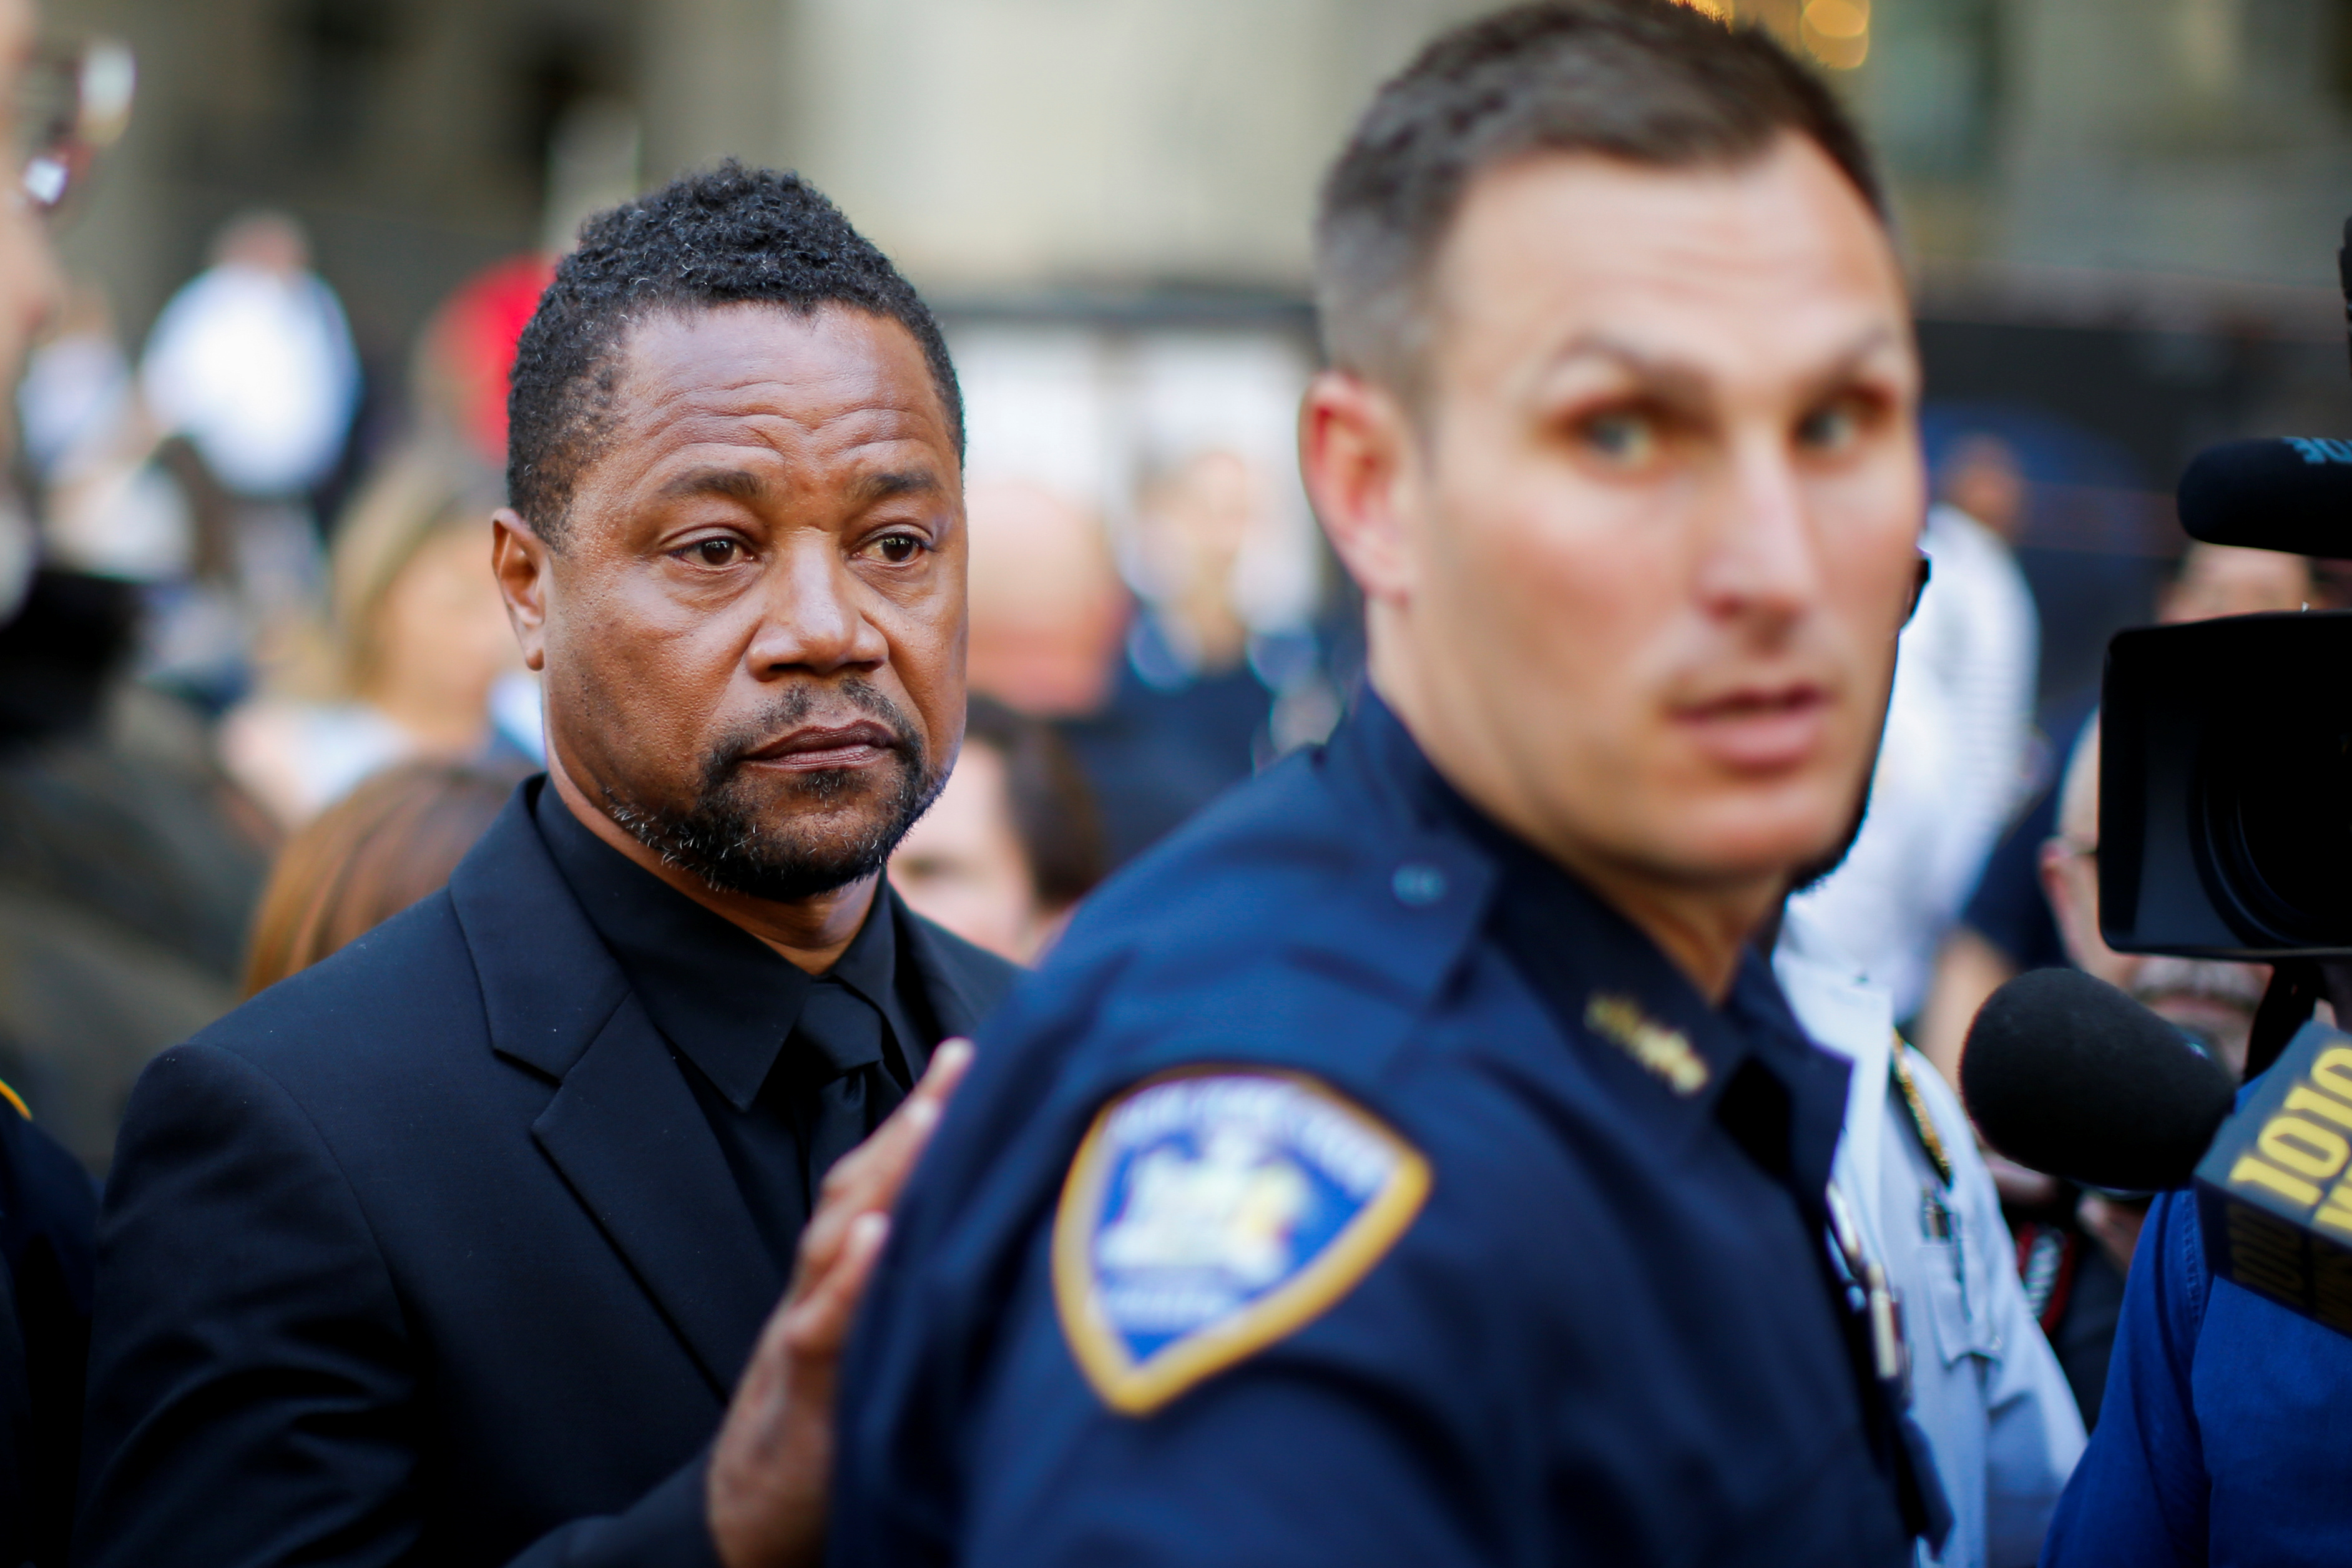 Actor Cuba Gooding Jr. is surrounded by media as he leaves New York Criminal Court in the Manhattan borough of New York City, U.S., June 26, 2019. REUTERS/Eduardo Munoz - RC112C4D60B0